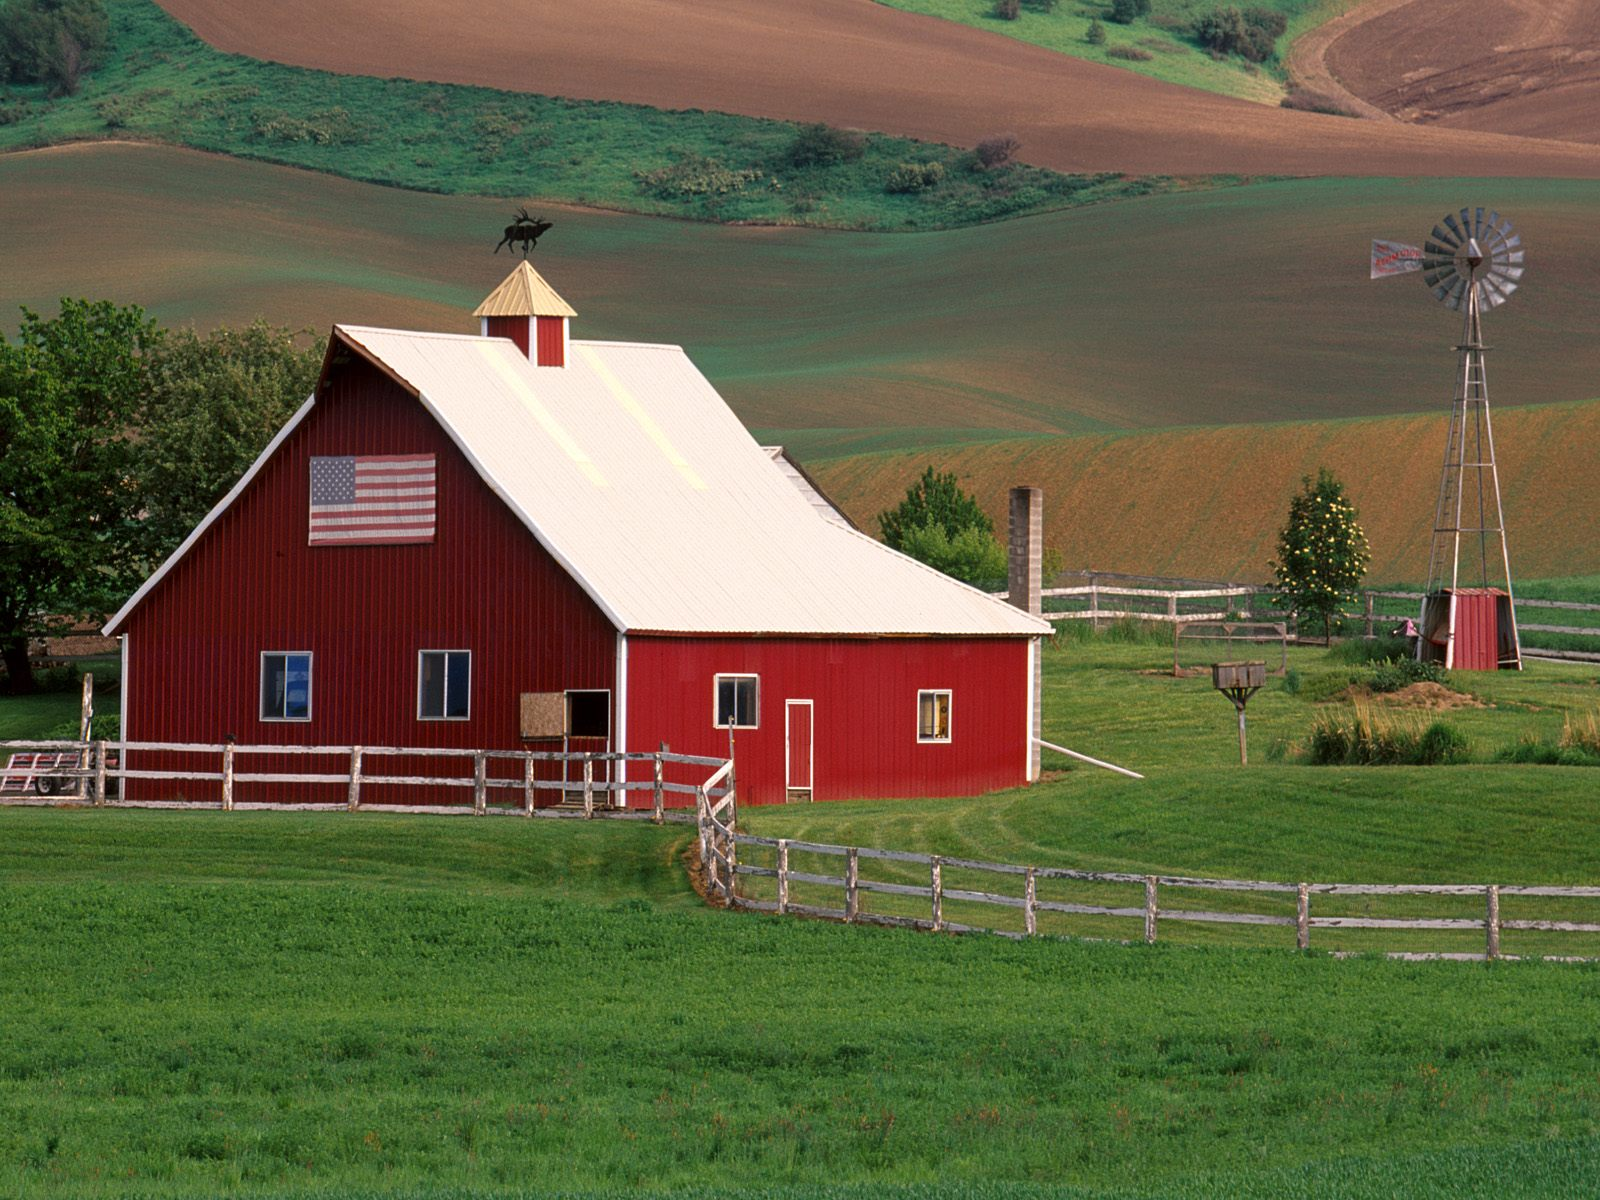 palouse farm country eastern washington Somewhat Reasonable 1600x1200